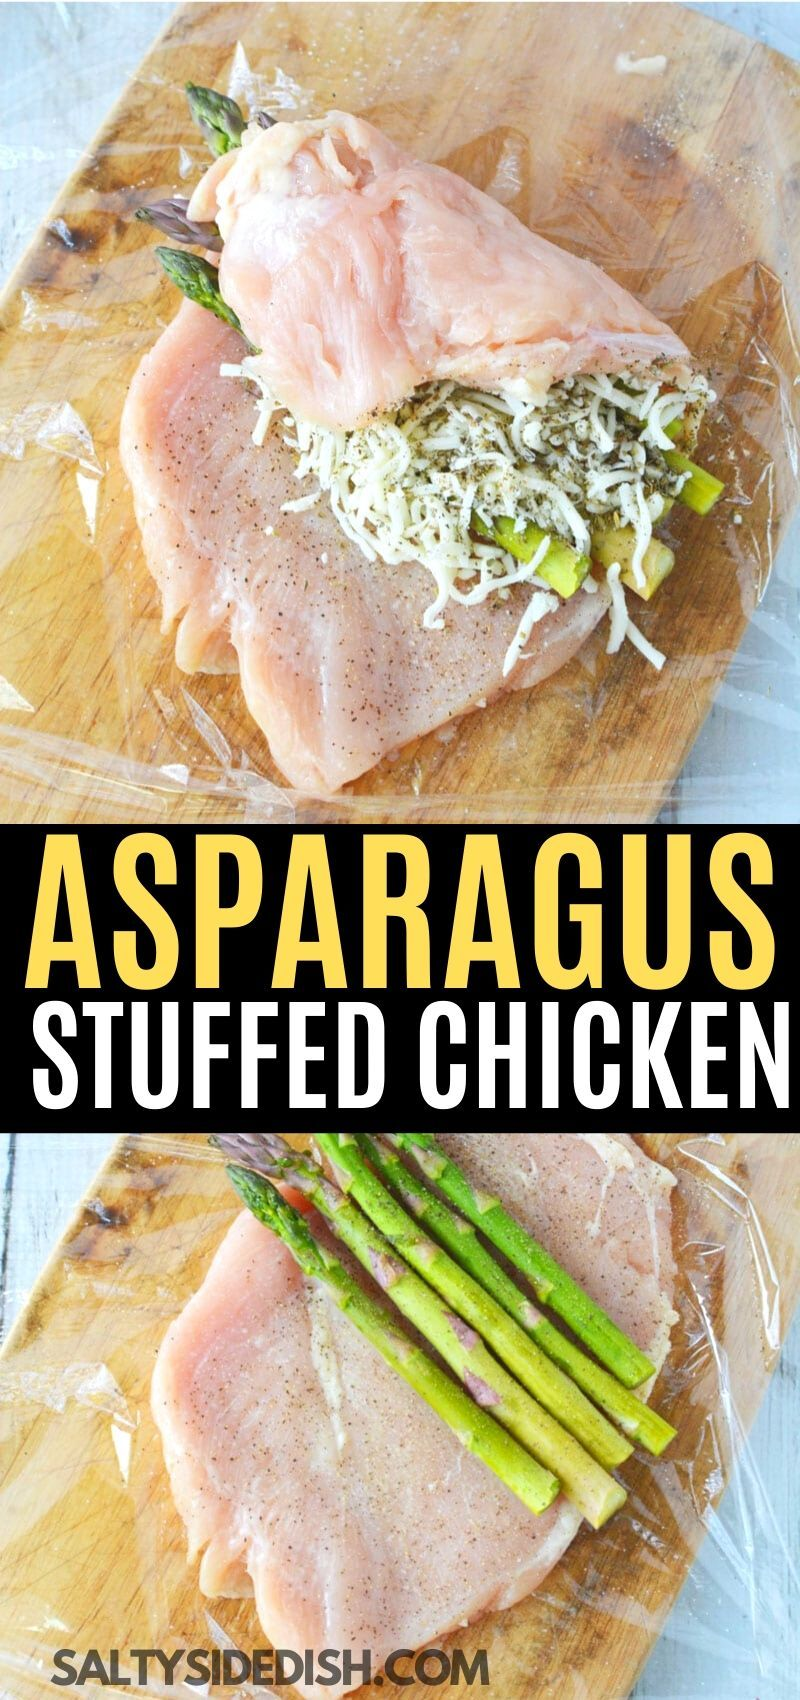 Photo of Asparagus Stuffed Chicken